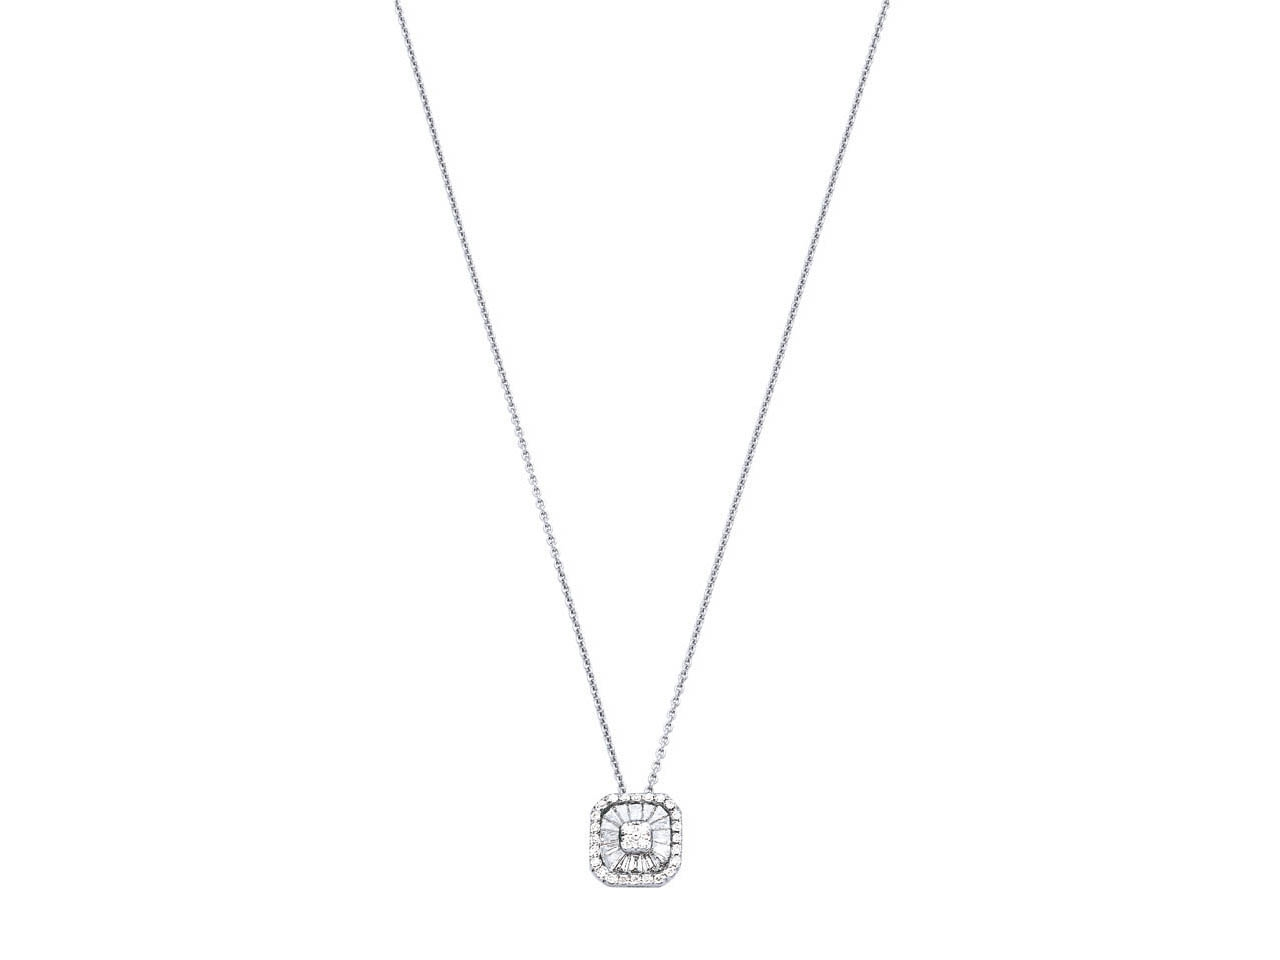 Collier motif carré grand modèle, Or gris, diamants 0,433 ct